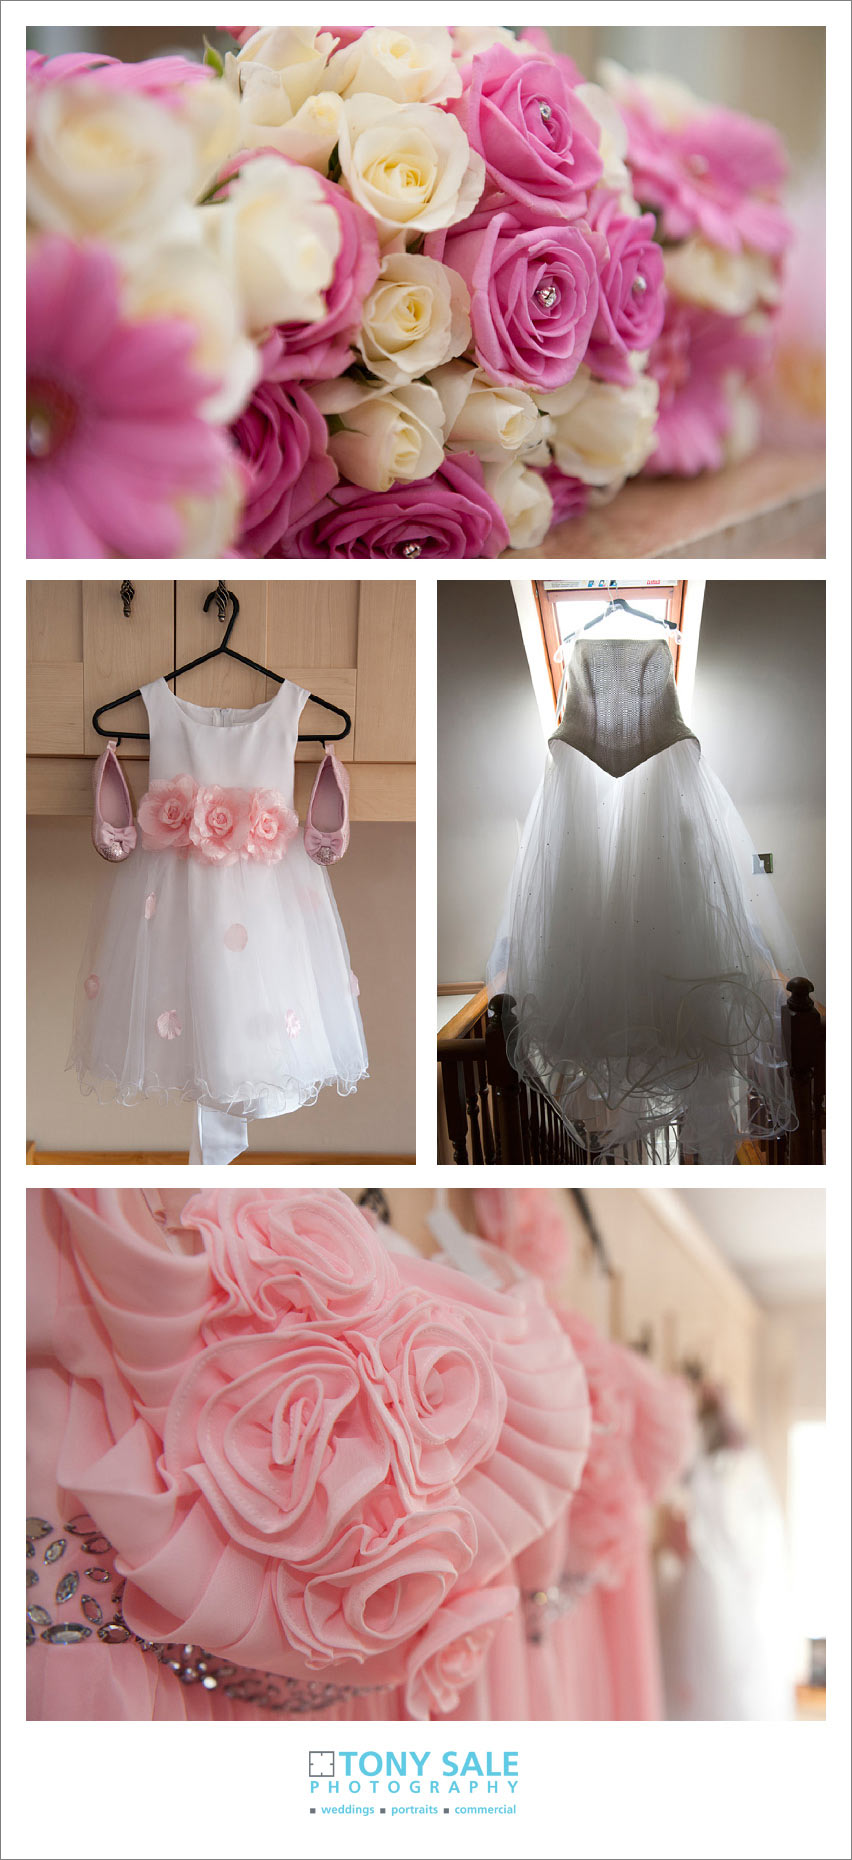 The brides dress and flowers